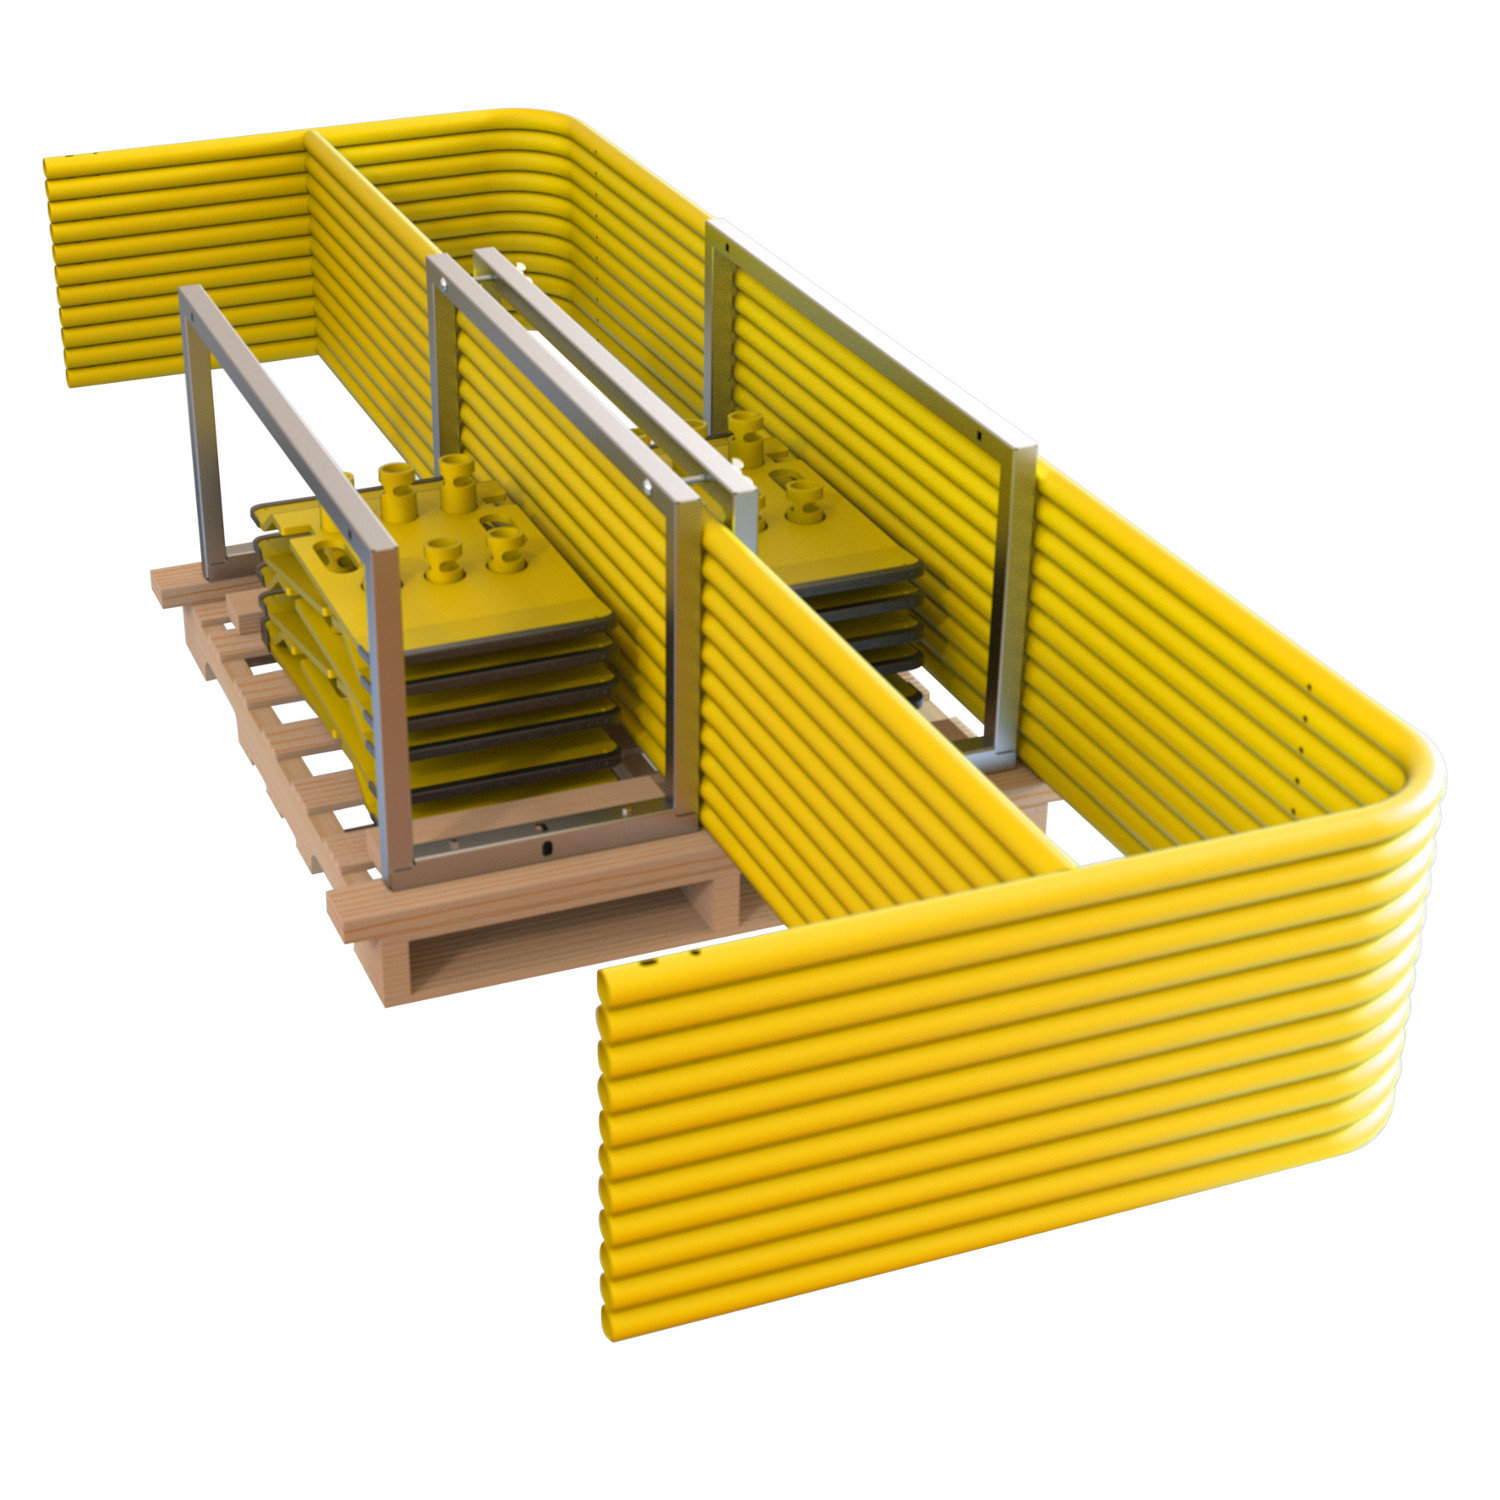 Guardrail Pallet Kit & Stack Pallet Kit